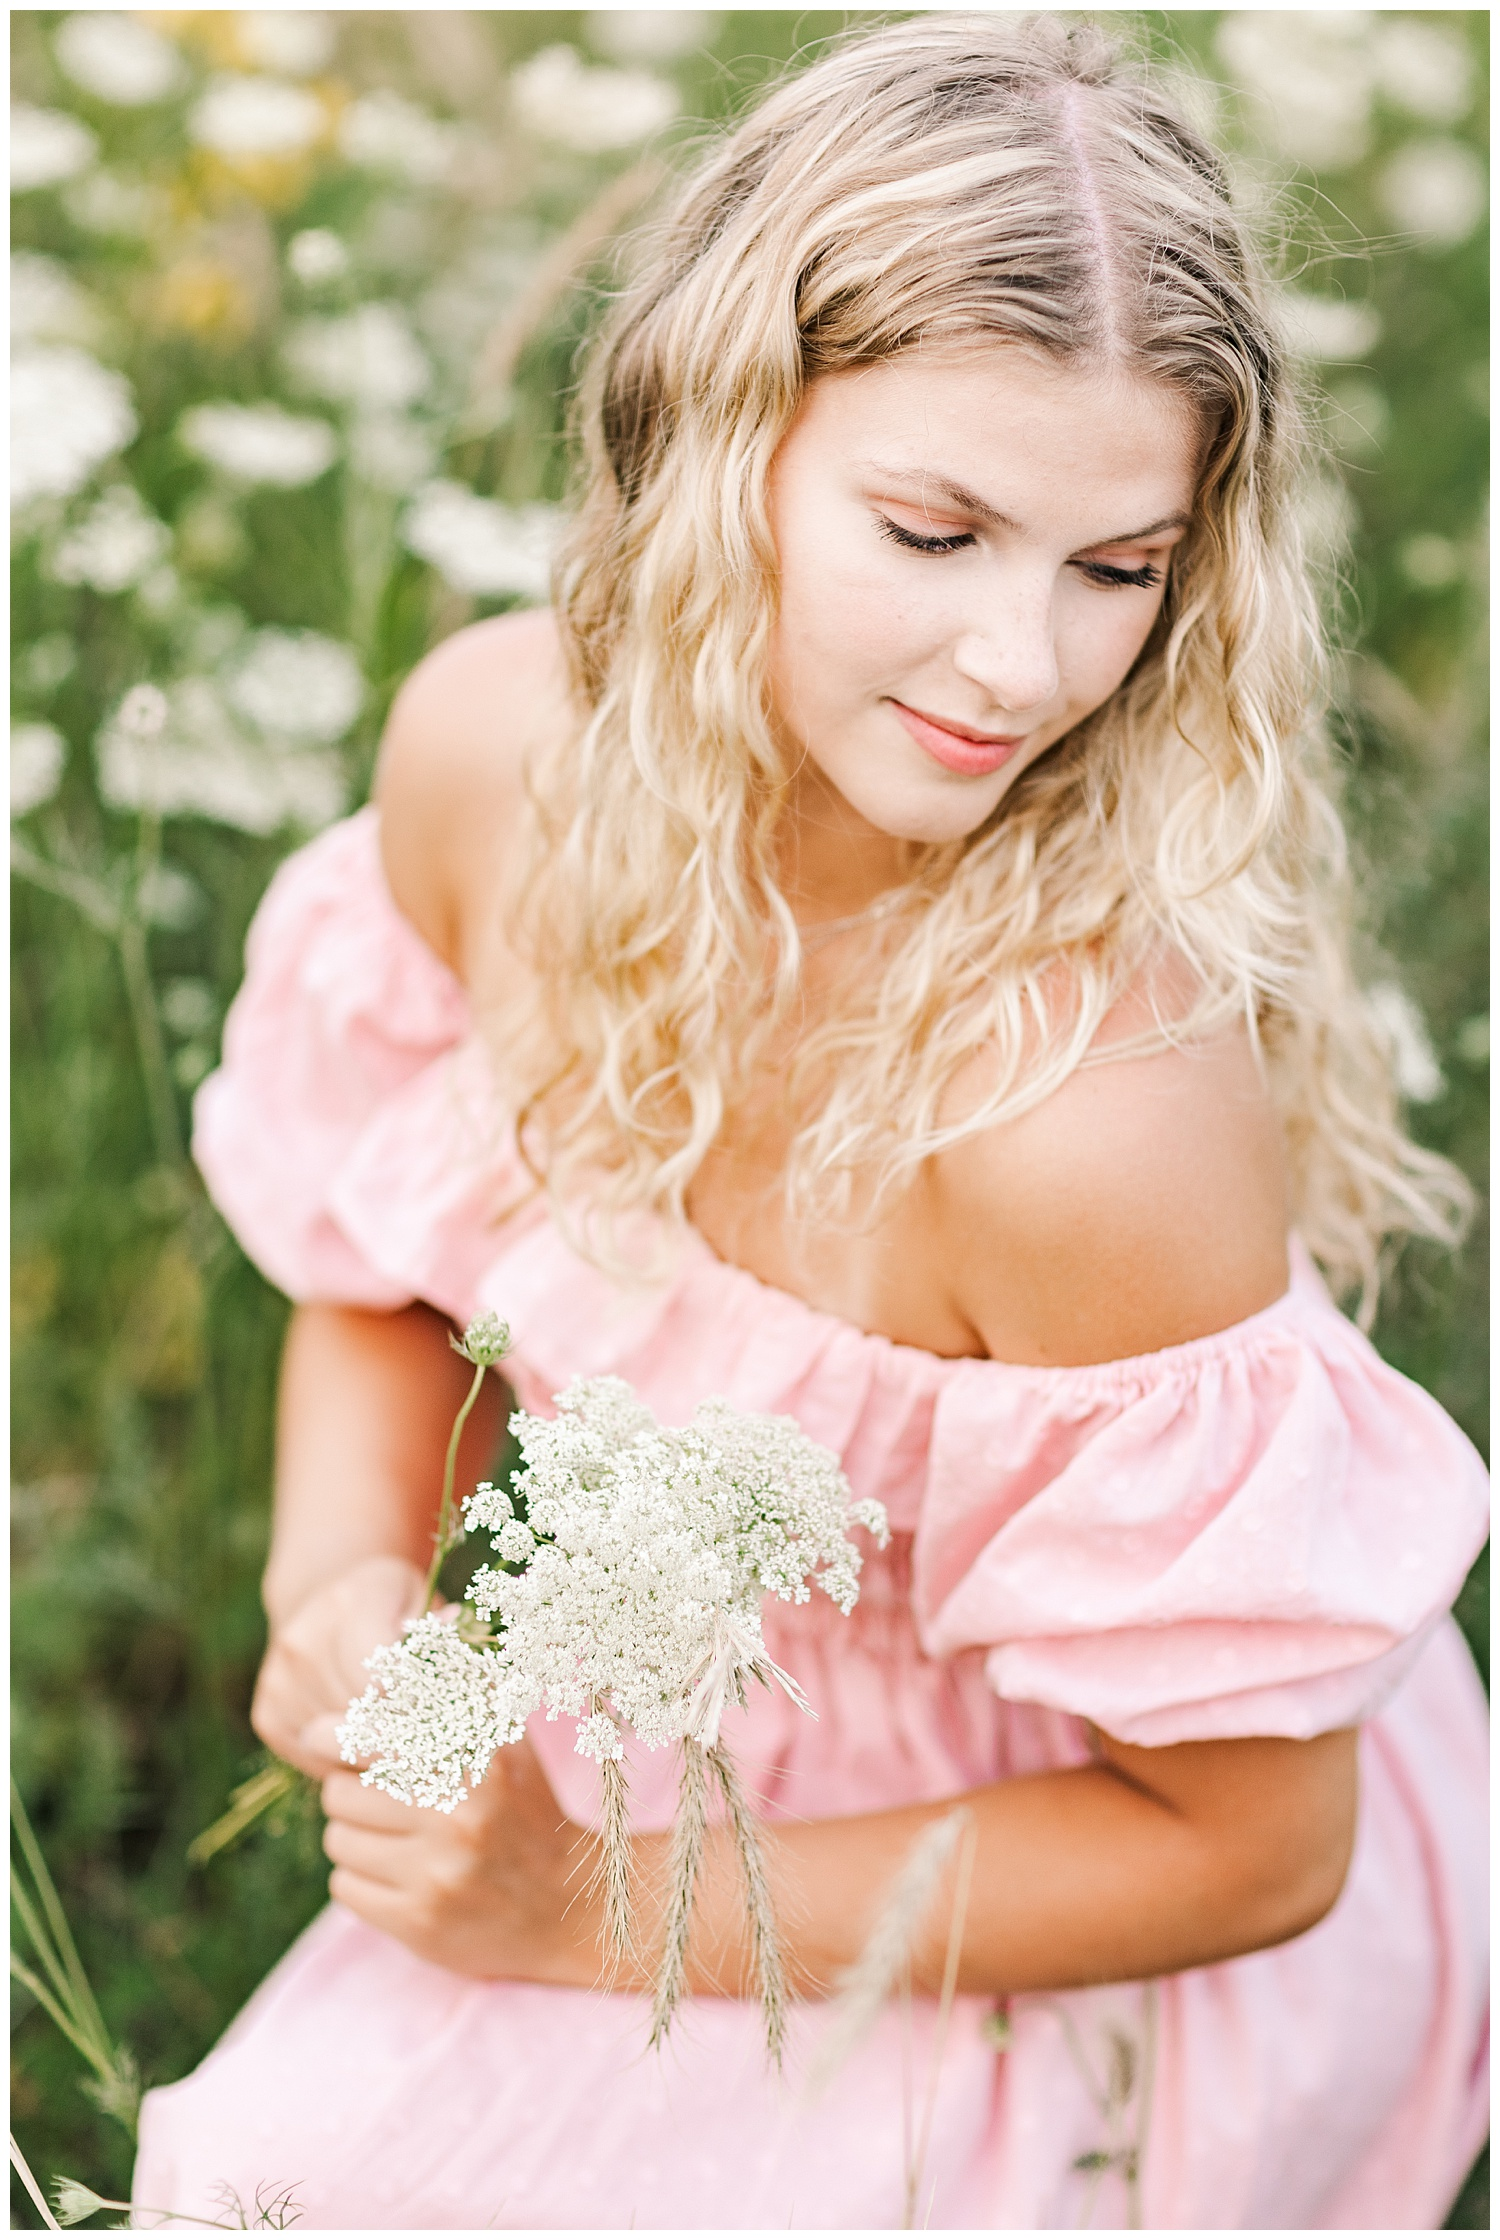 Senior Rachel wearing a light pink off the shoulder dress crouches down in a wildflower field | CB Studio